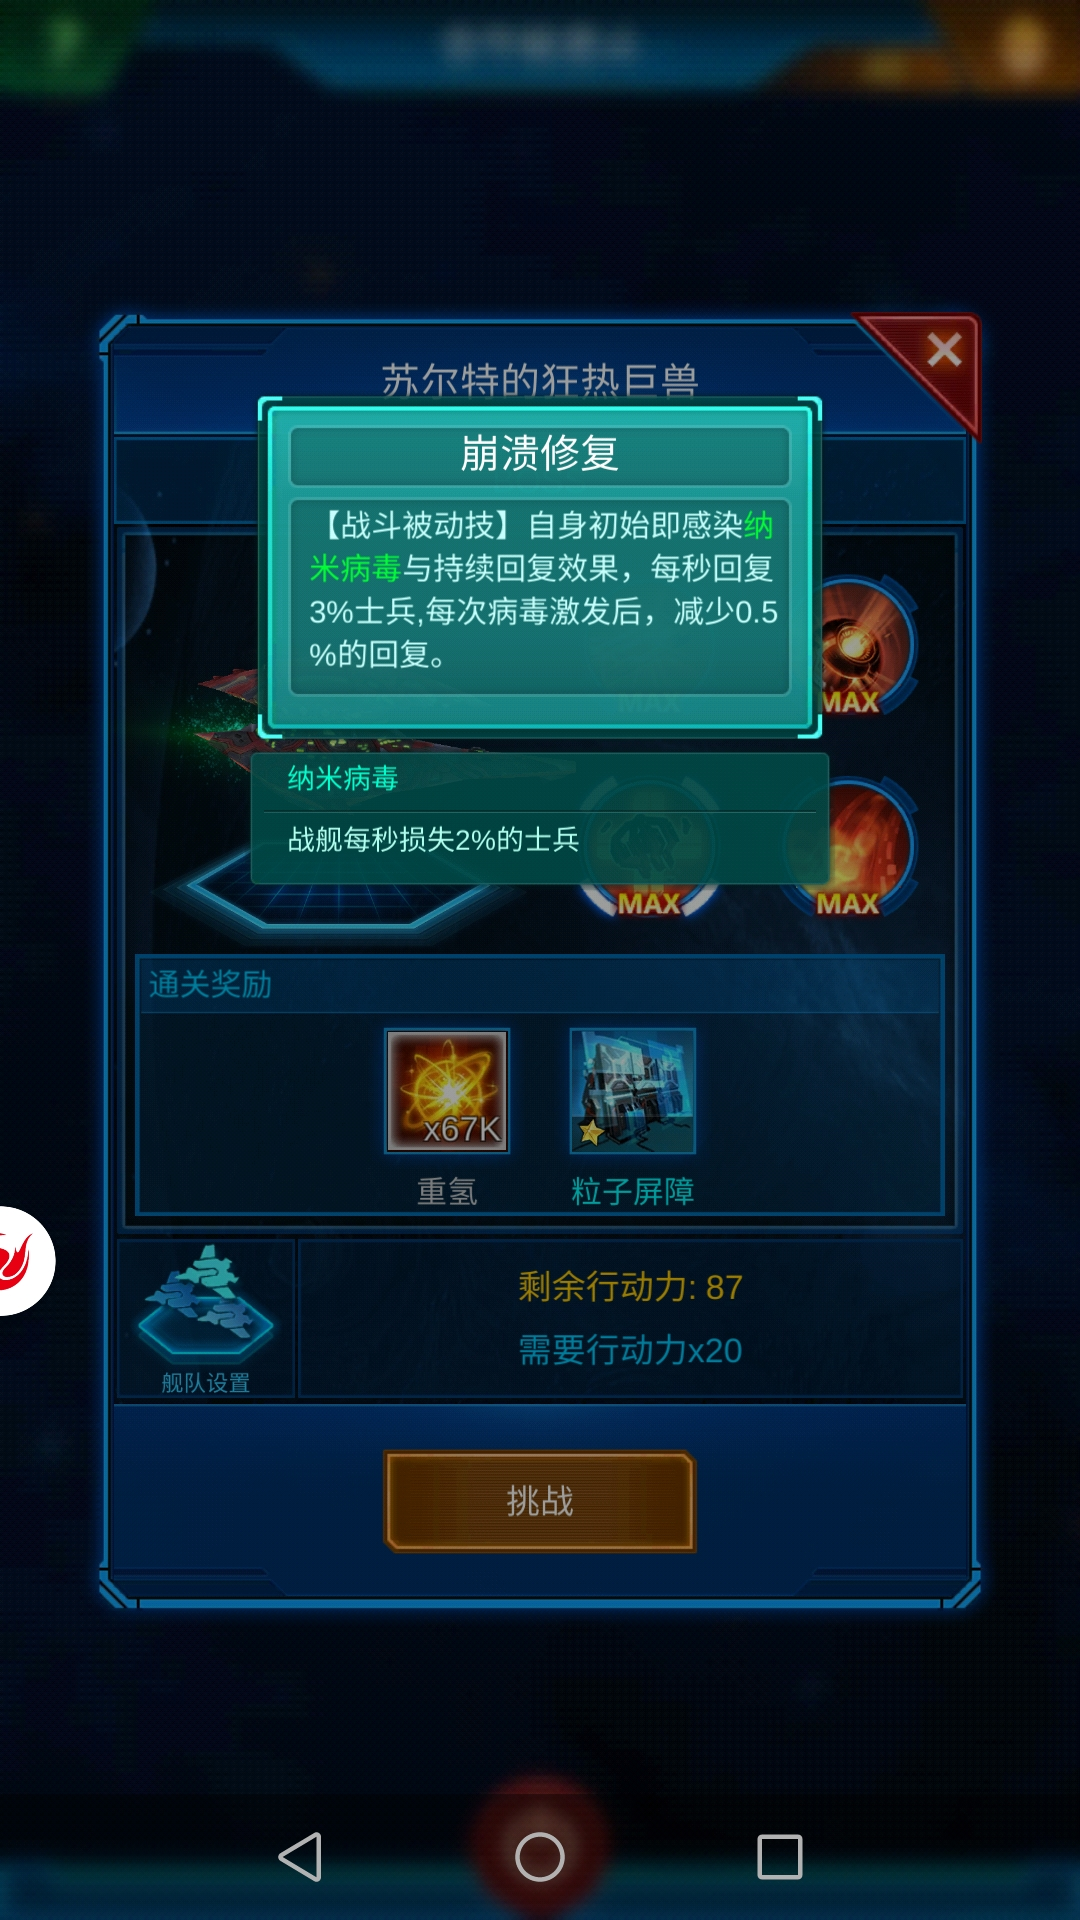 学校资料Screenshot_20200410-085654.jpg